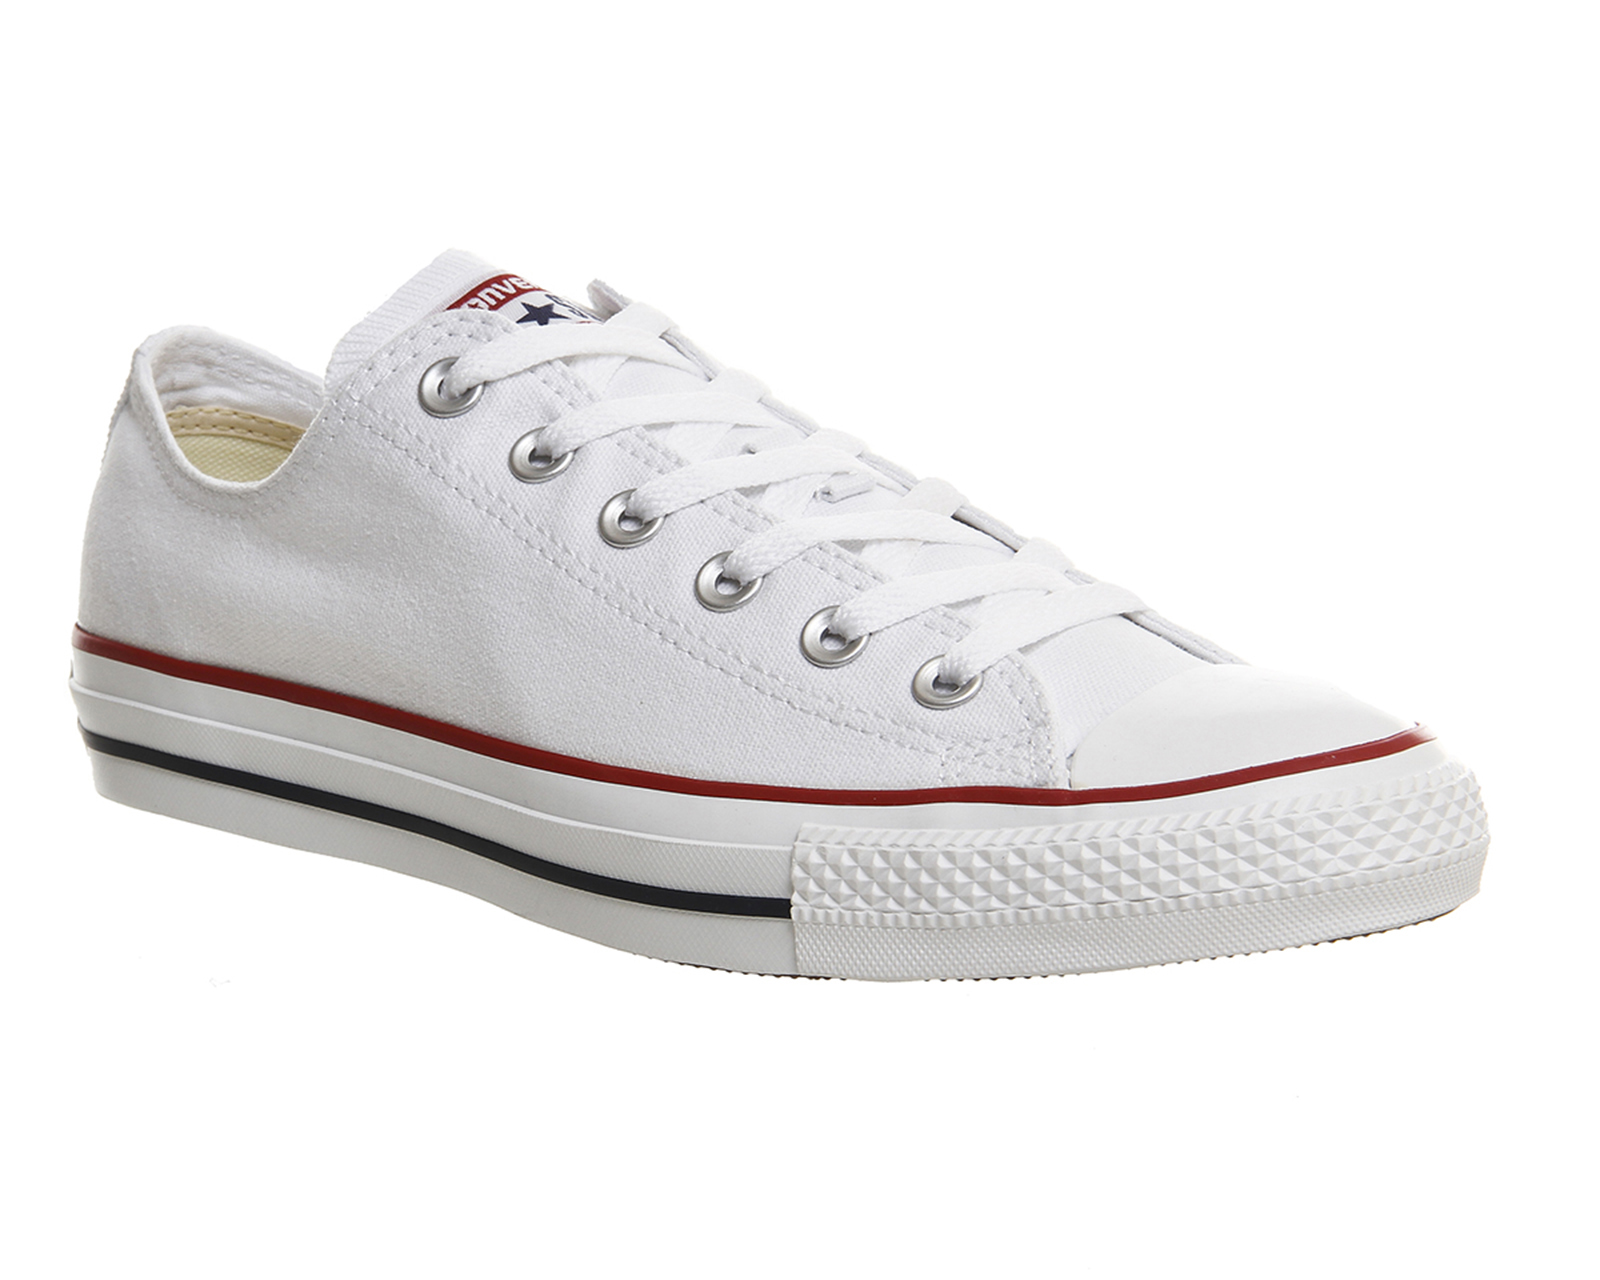 White converse converse all star low white canvas - unisex sports CXSTEJI